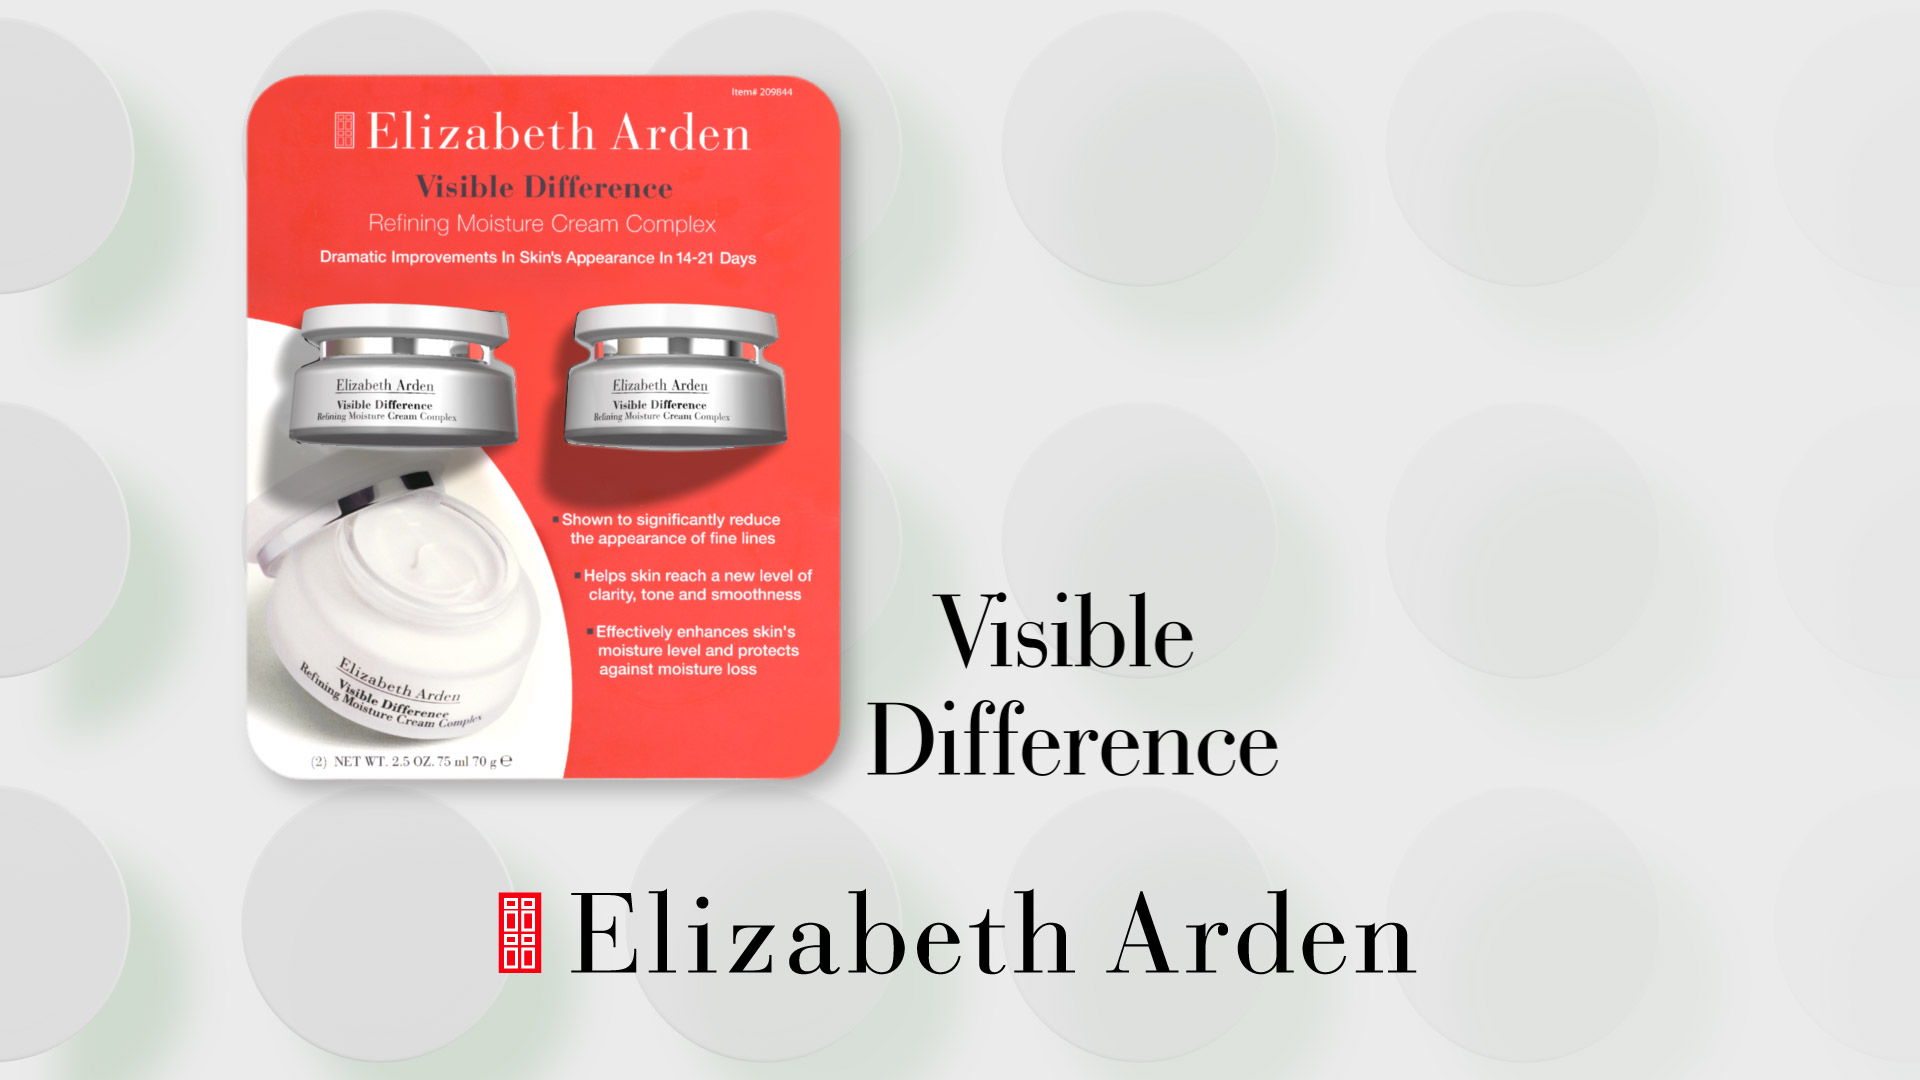 Elizabeth Arden Visible Difference Commercial Video